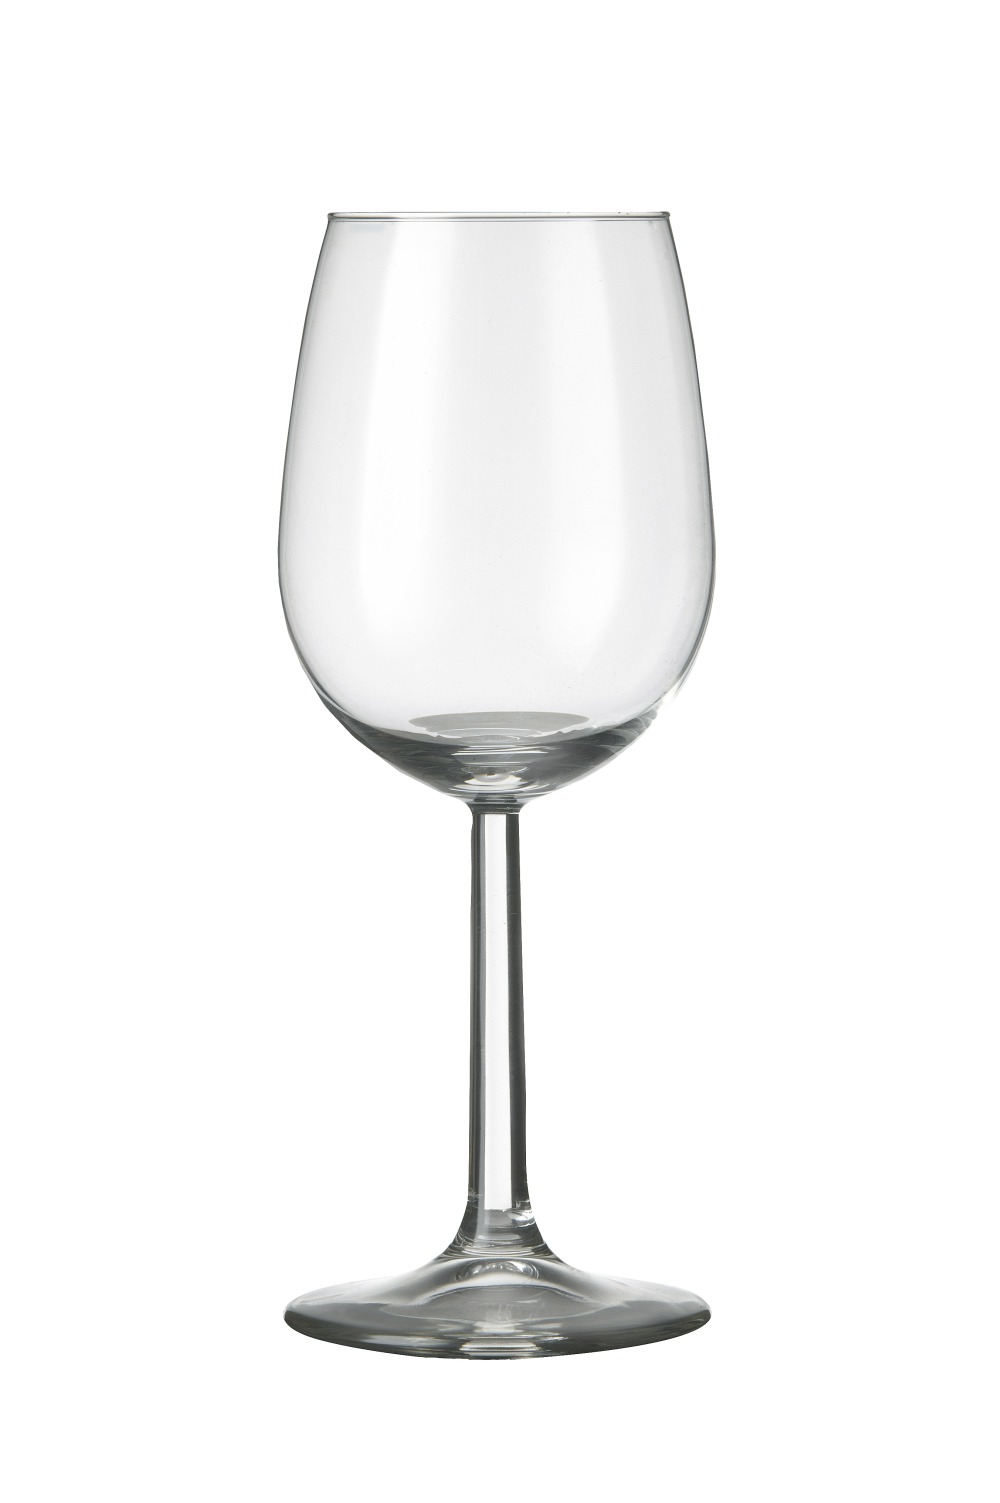 royal_leerdam_wijnglas_bouquet_29cl.jpg